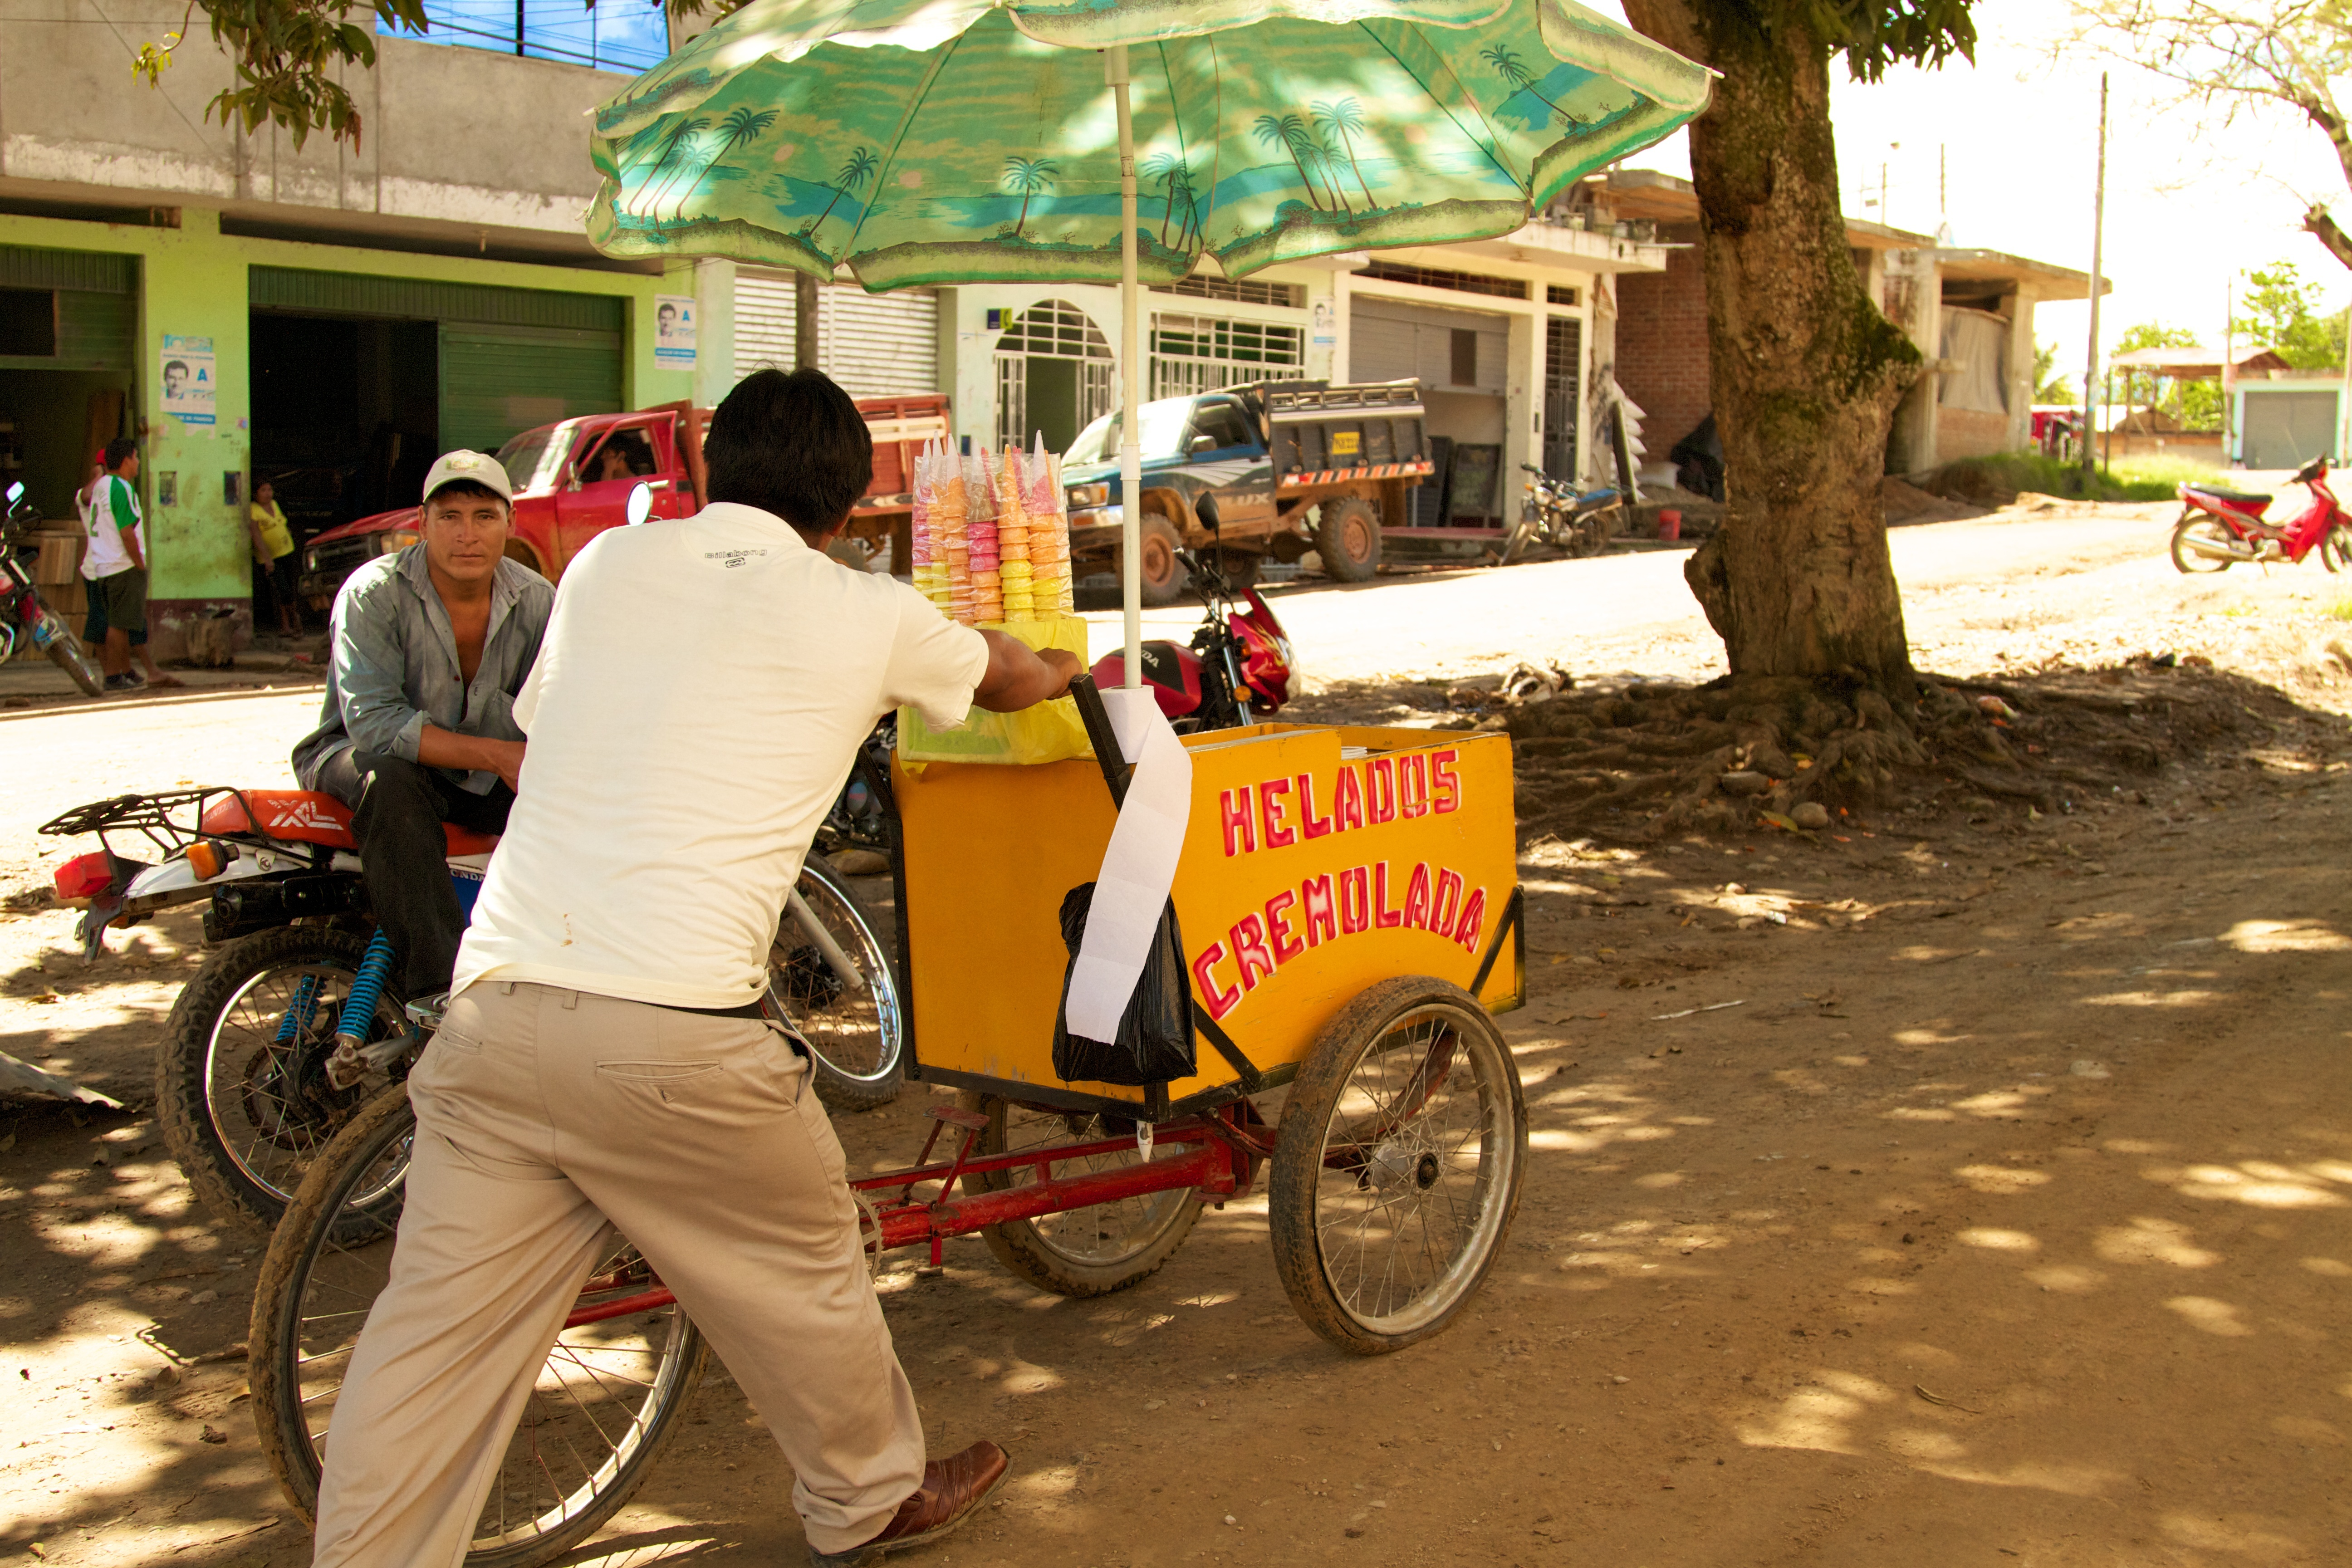 Selling ice cream in the streets of San Martín